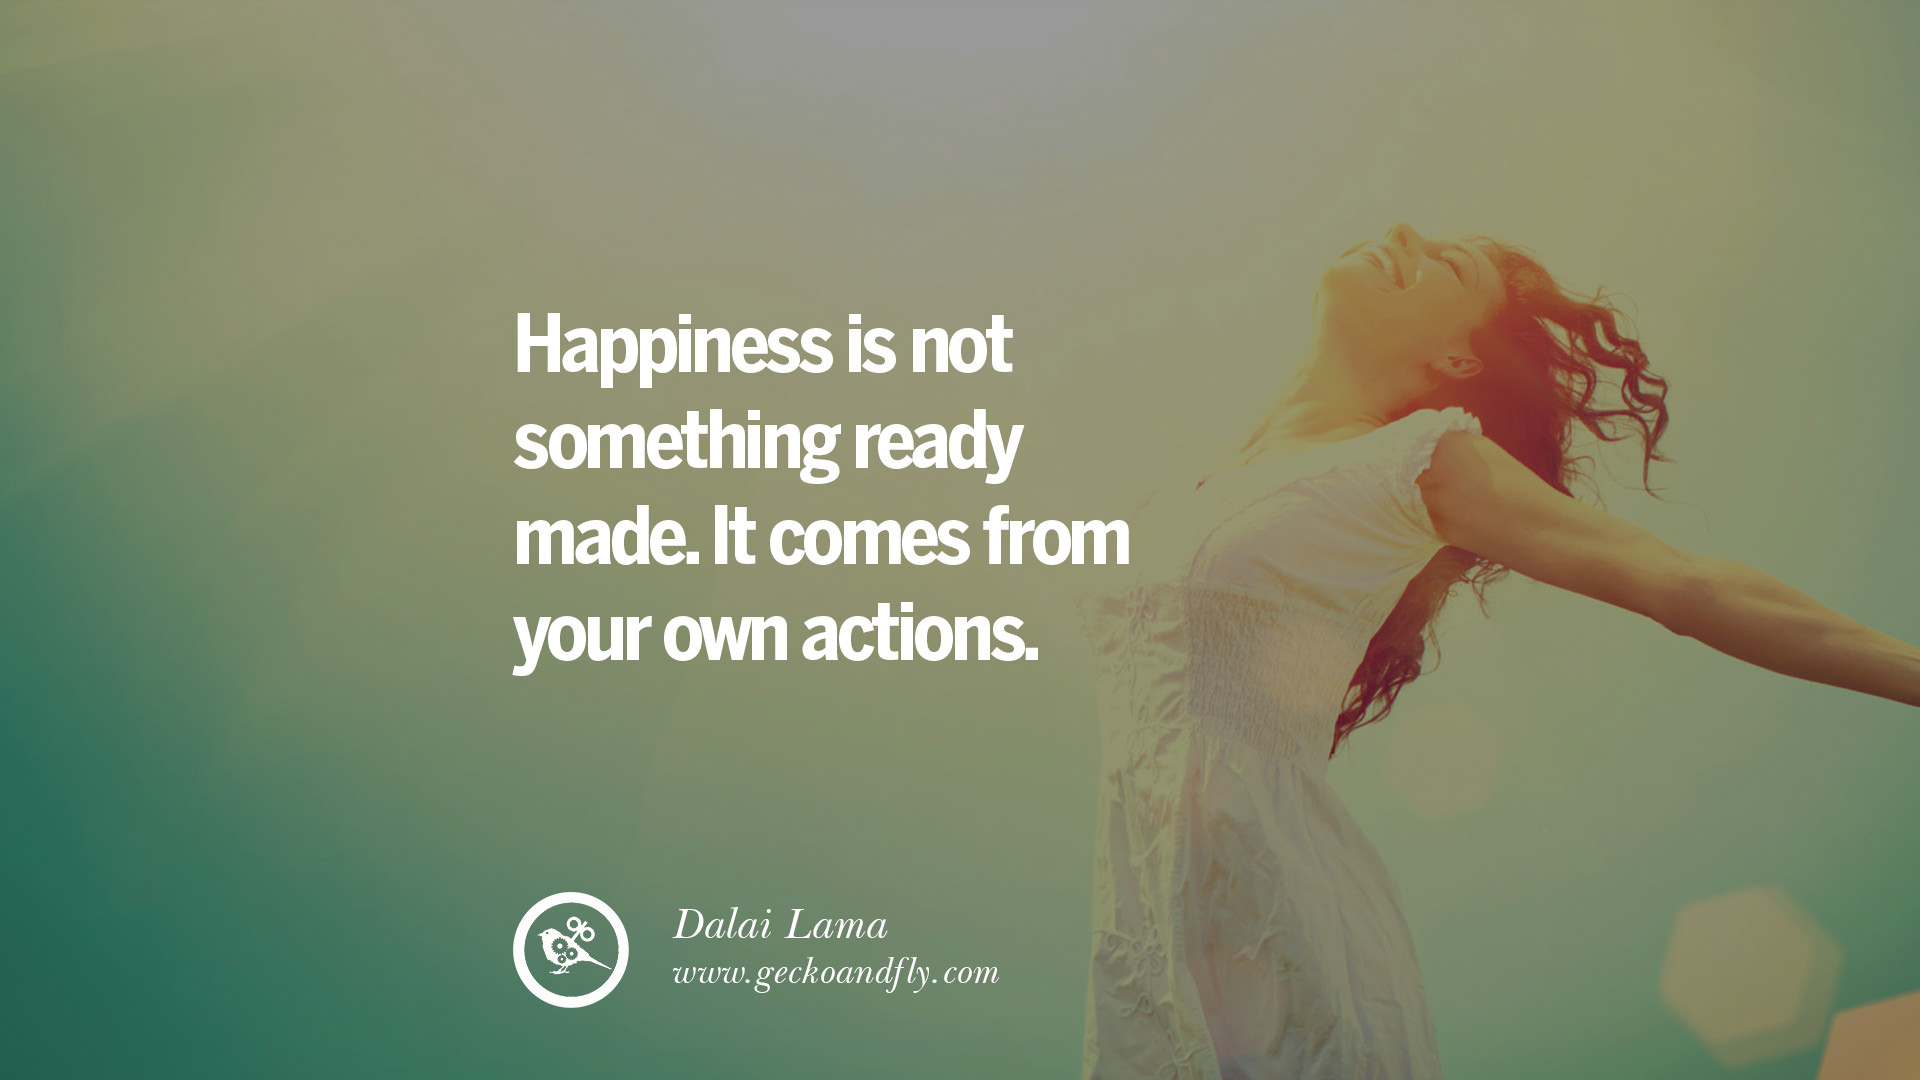 A Quote About Happiness 21 Quotes About Pursuit Of Happiness To Change Your Thinking